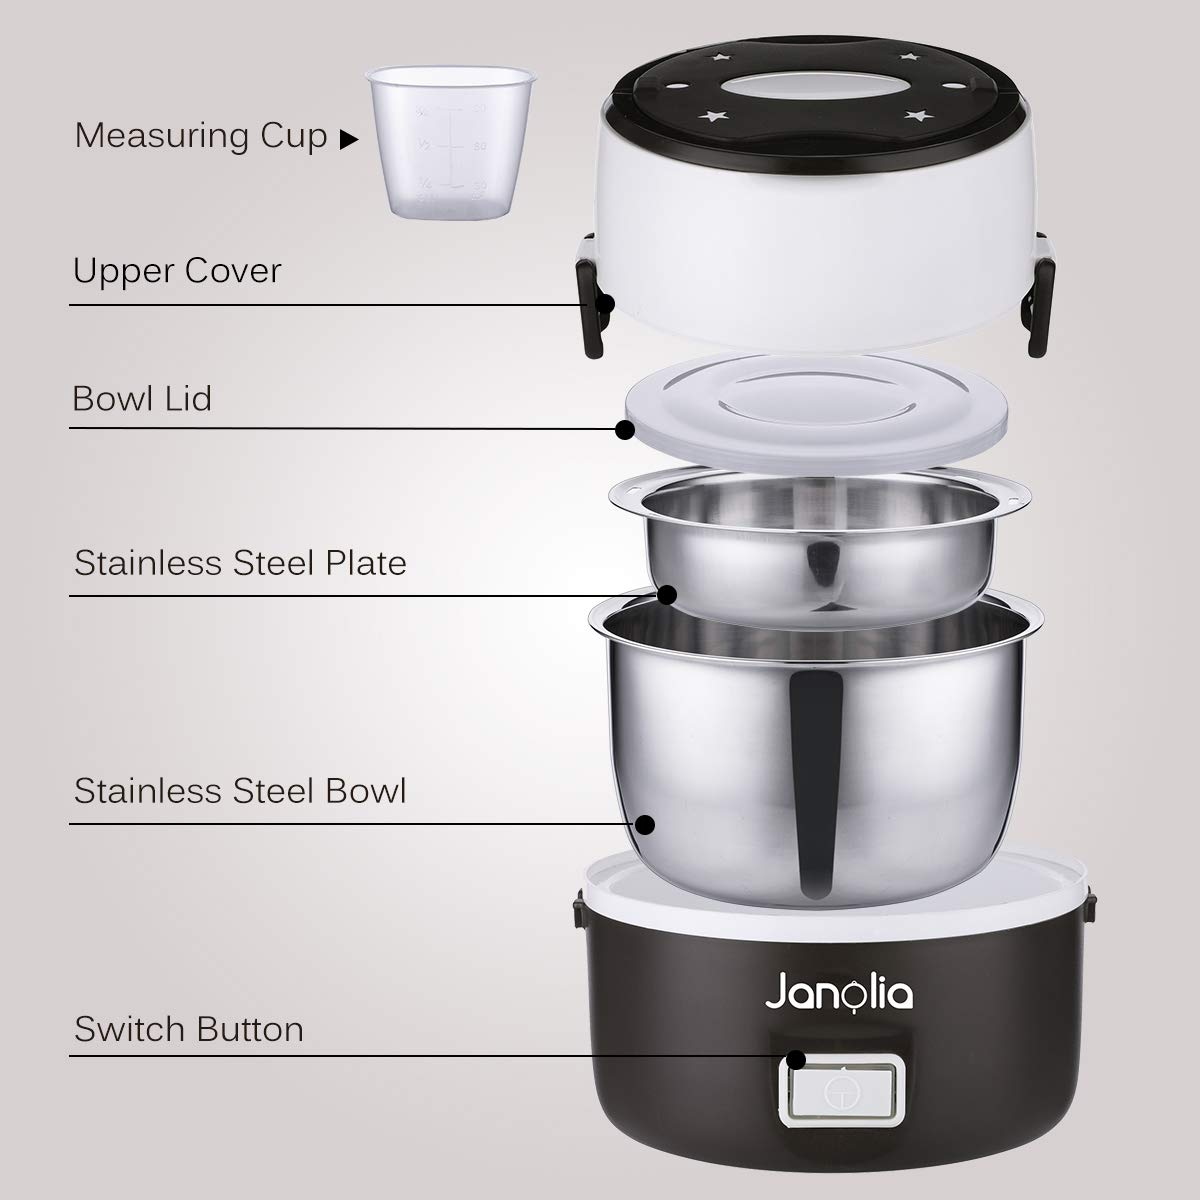 Janolia Electric Food Steamer, Portable Lunch Box Steamer with Stainless Steel Bowls, Measuring Cup by Janolia (Image #4)